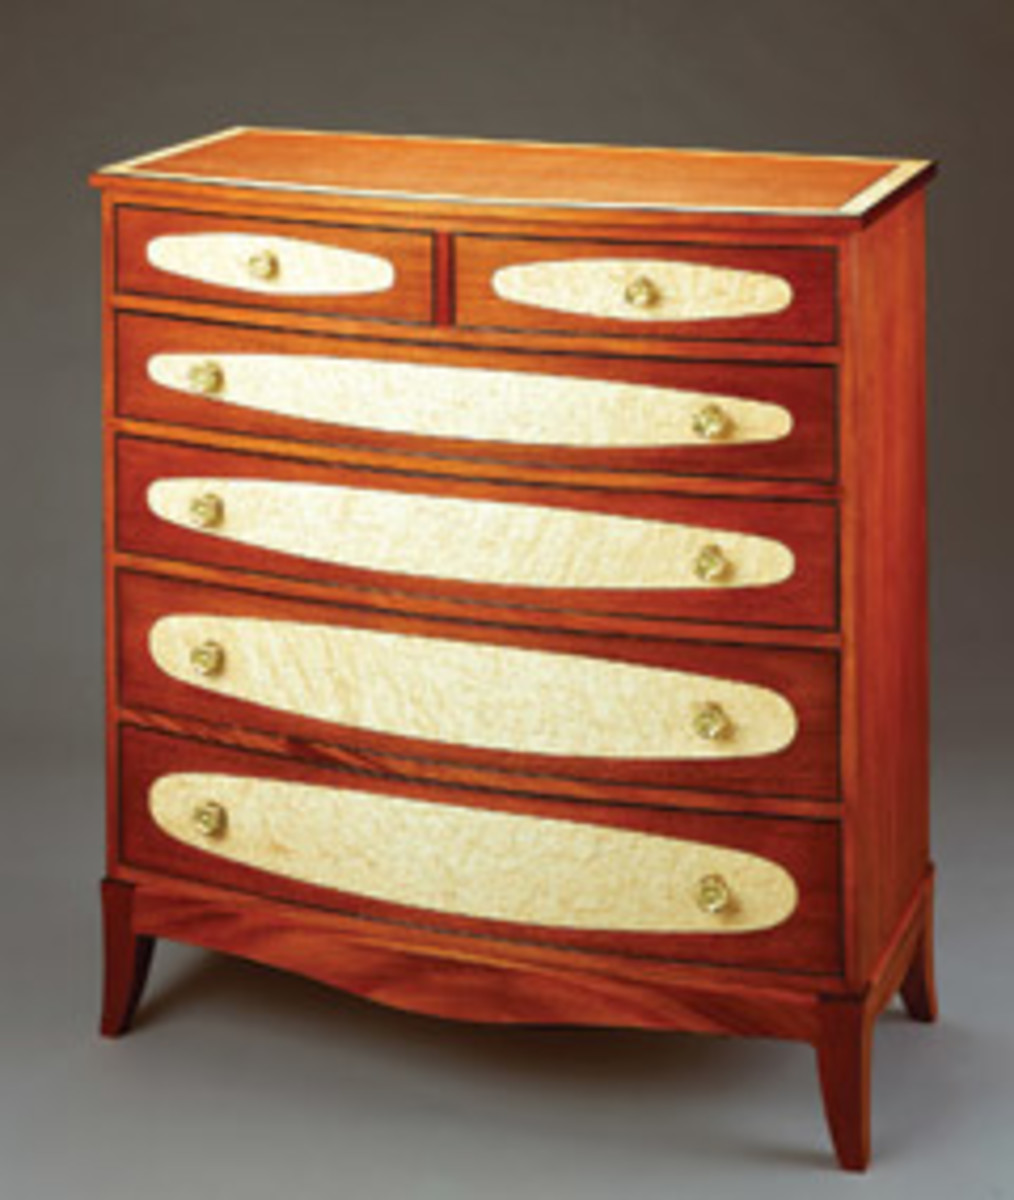 This bow front chest by Terry Moore will be on exhibit through Oct. 10 at The Fells Historic Estate and Gardens.